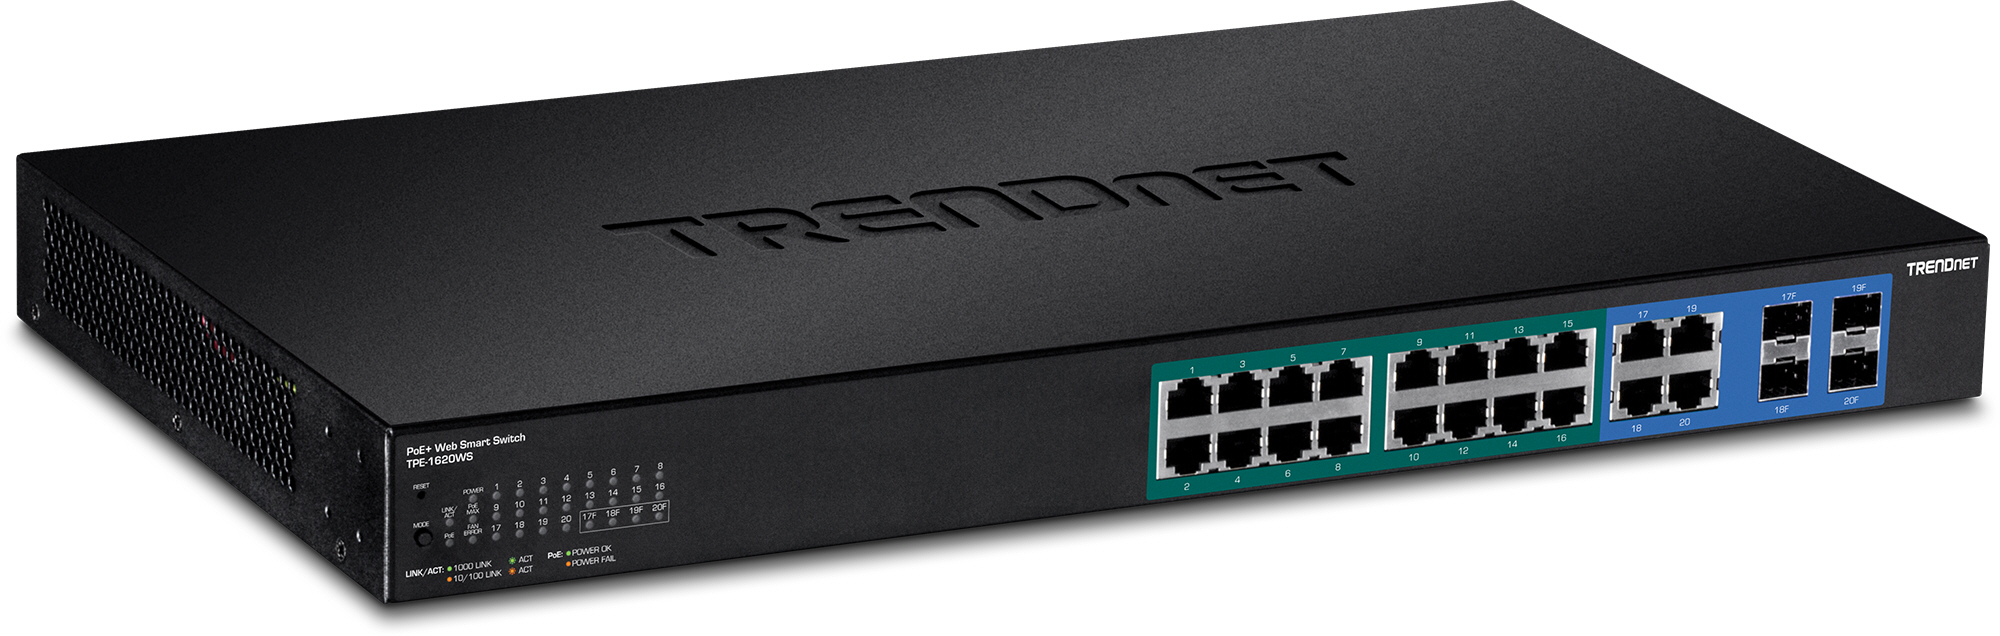 Switches / Routers